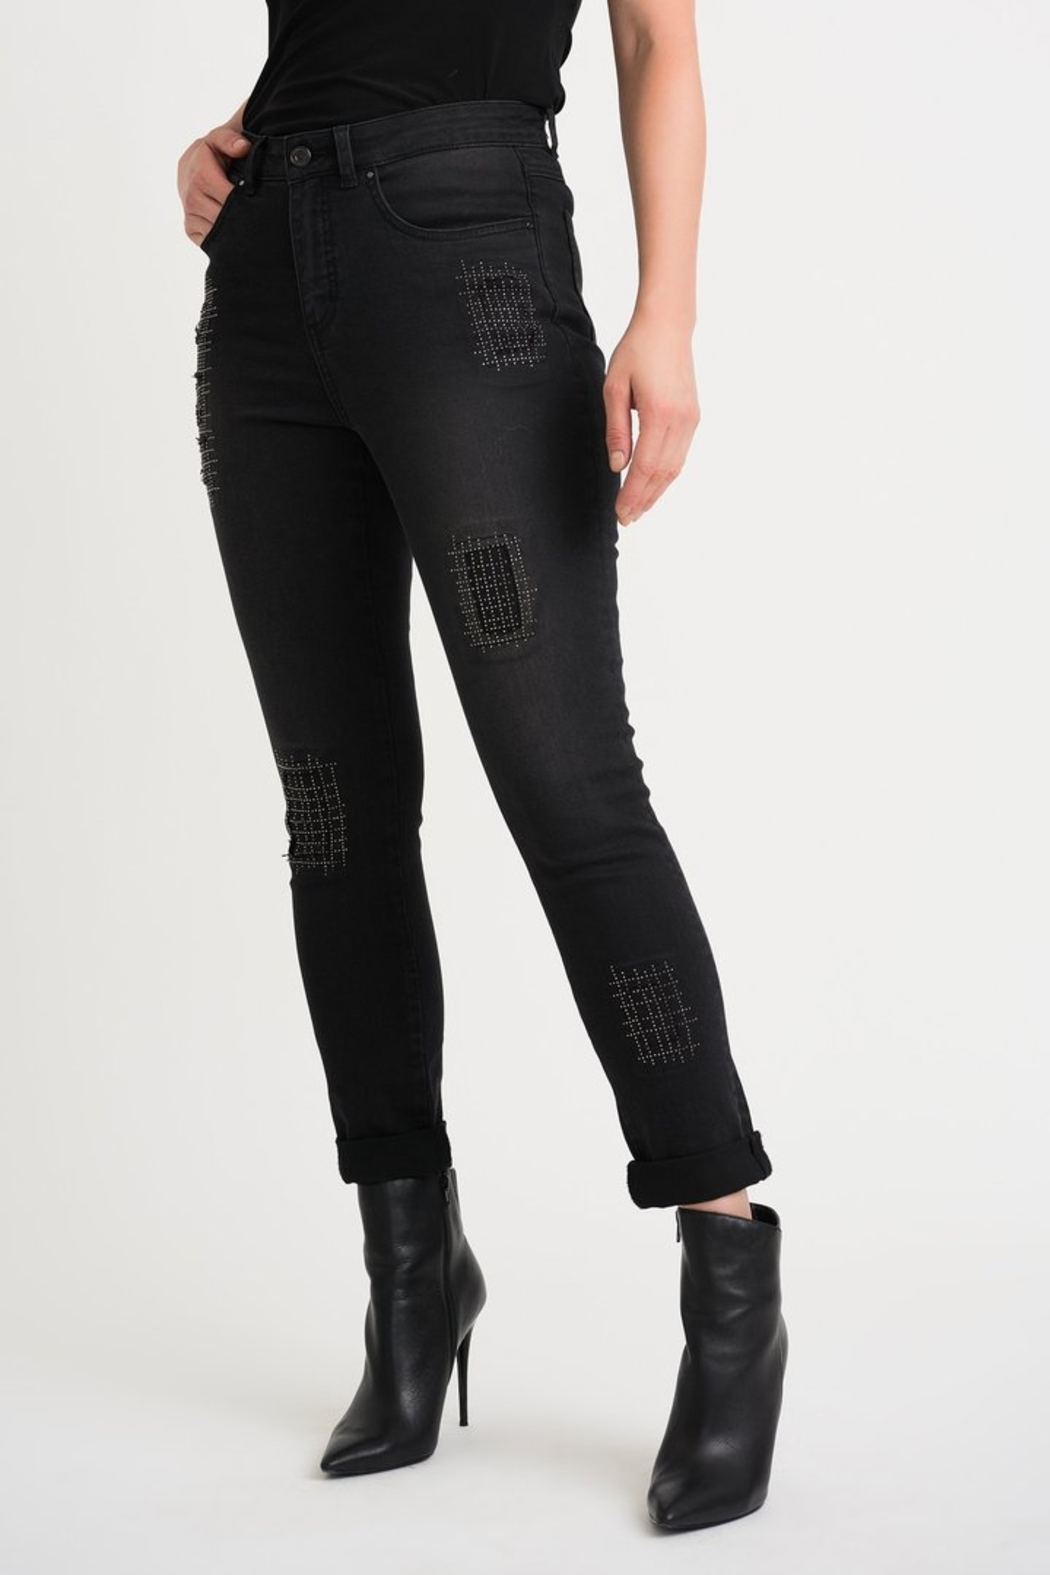 Joseph Ribkoff  Five pocket charcoal/dark grey jean with studded patch detail. - Main Image